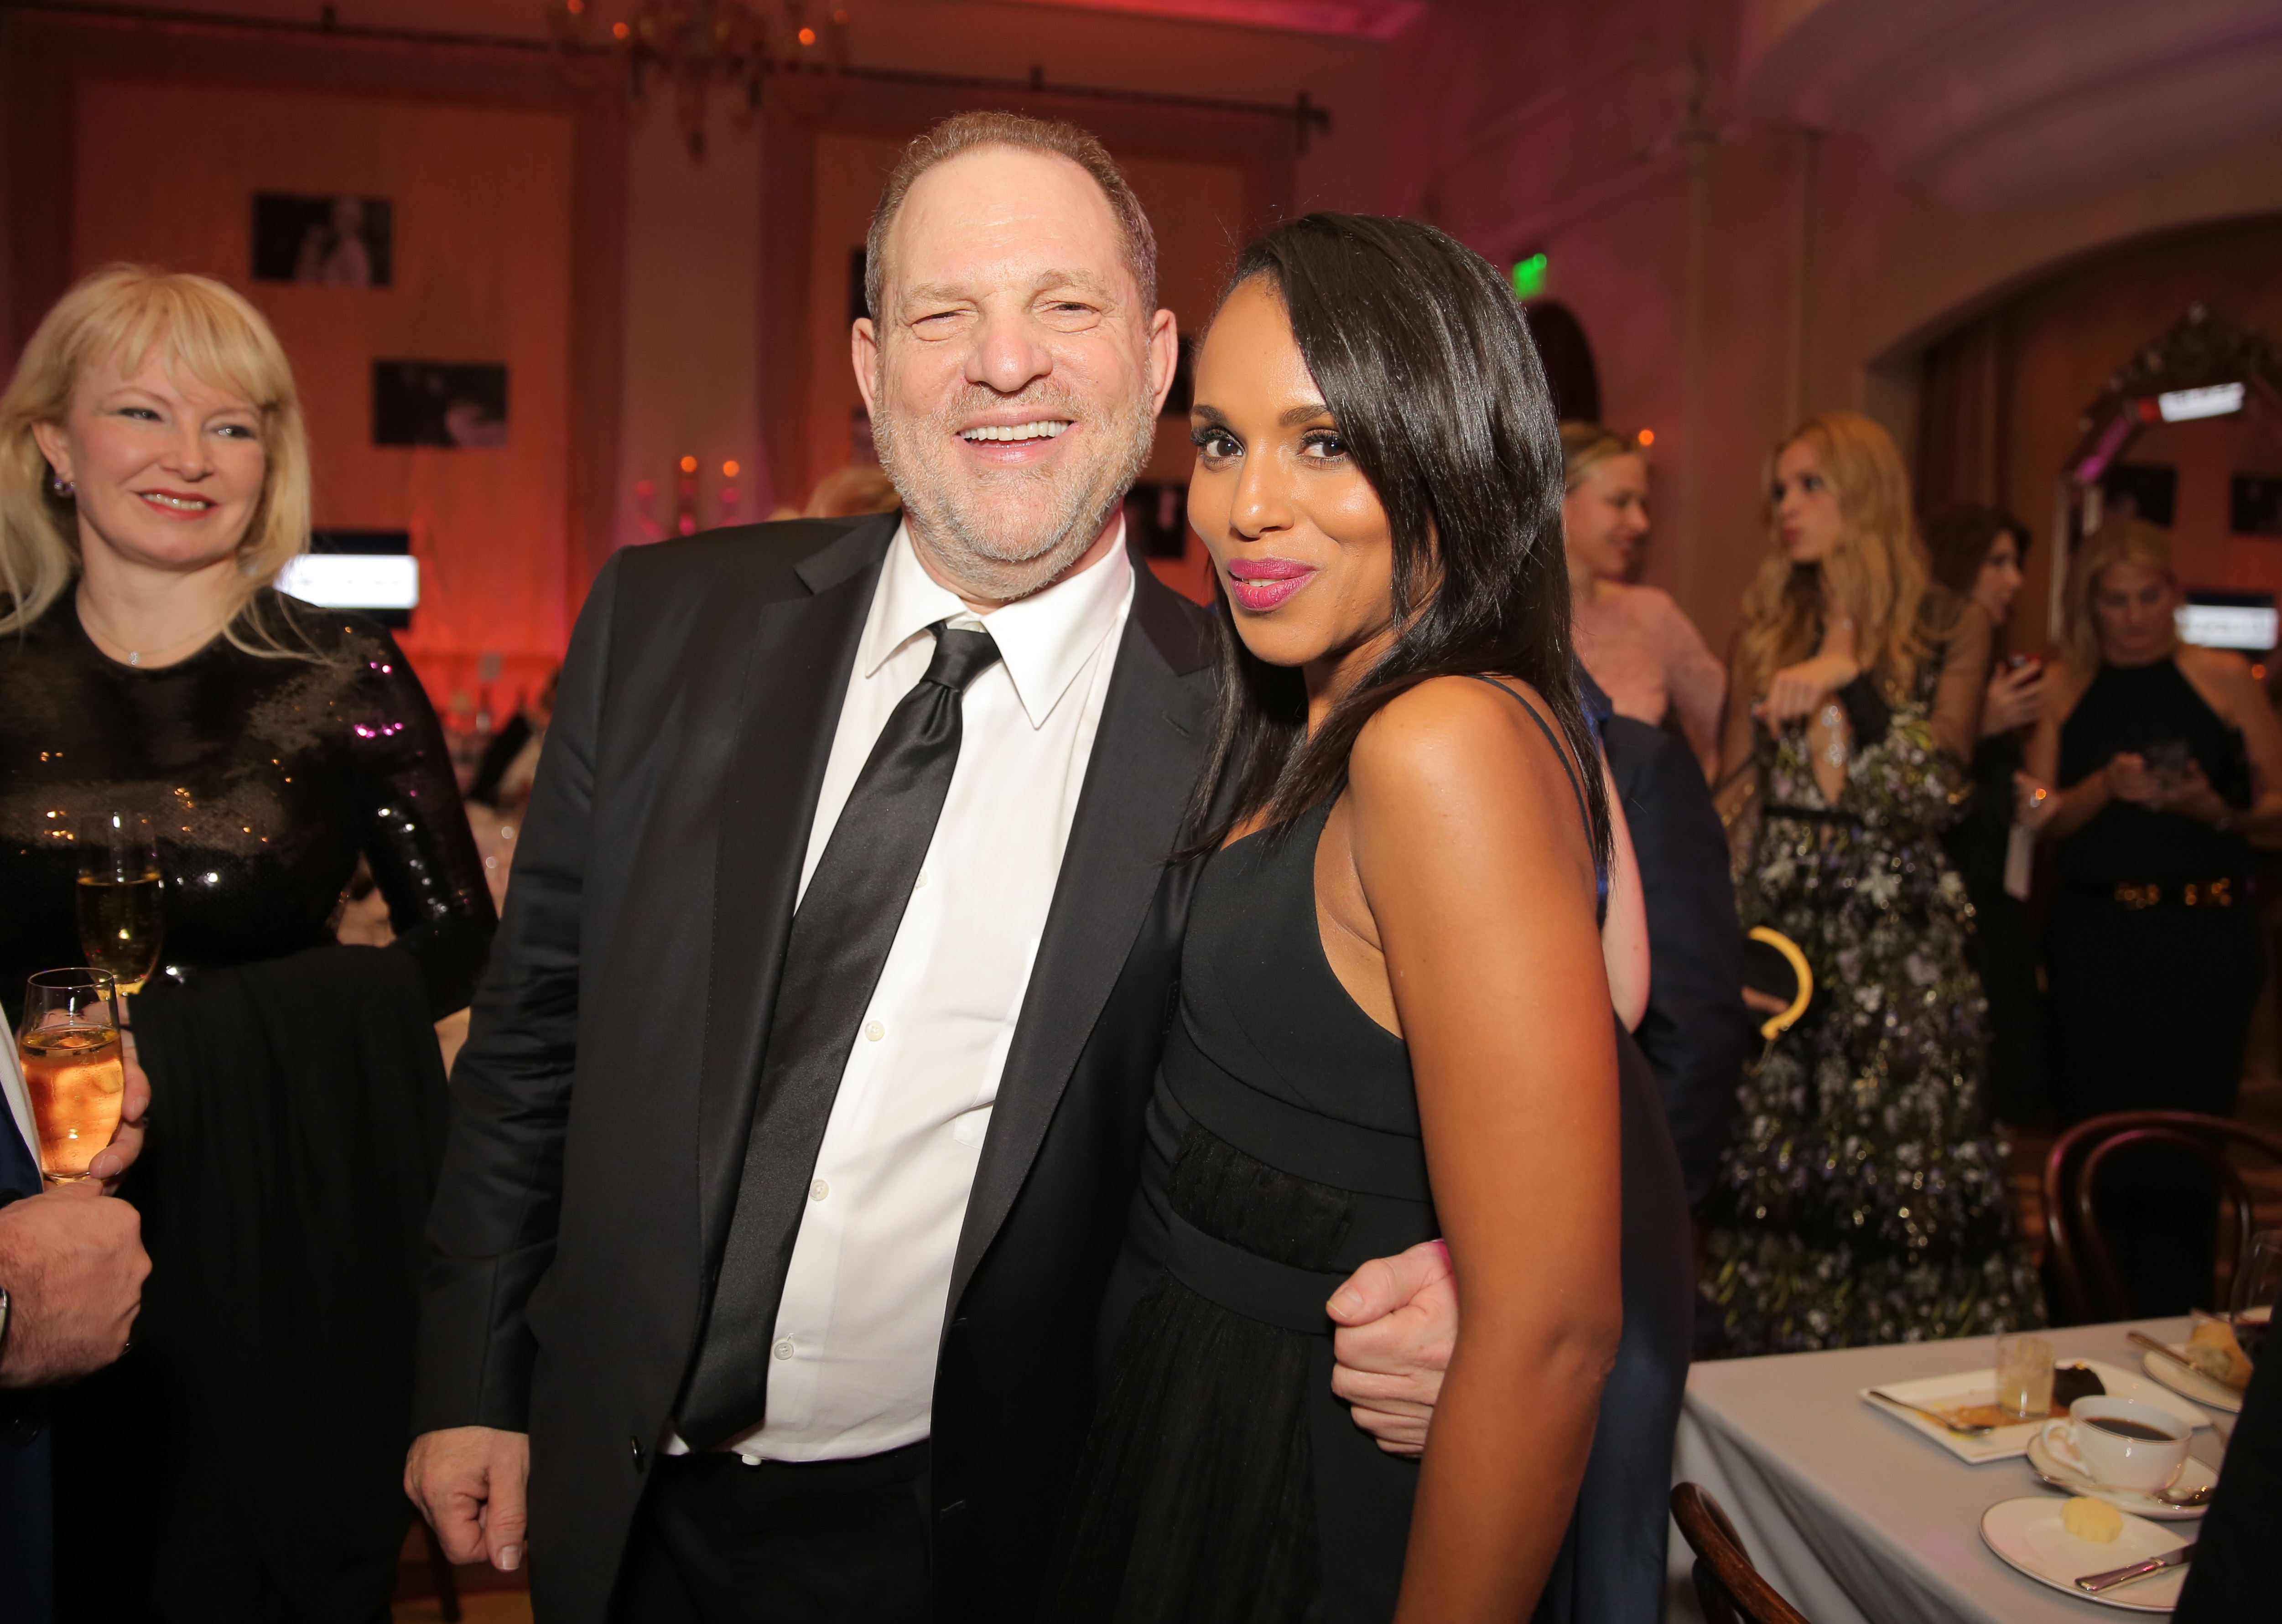 The Weinstein Company Pre-Oscar Dinner presented in partnership with Chopard, DeLeon Tequila, FIJI Water, and Lexus at the Montage, Los Angeles, America - 27 Feb 2016